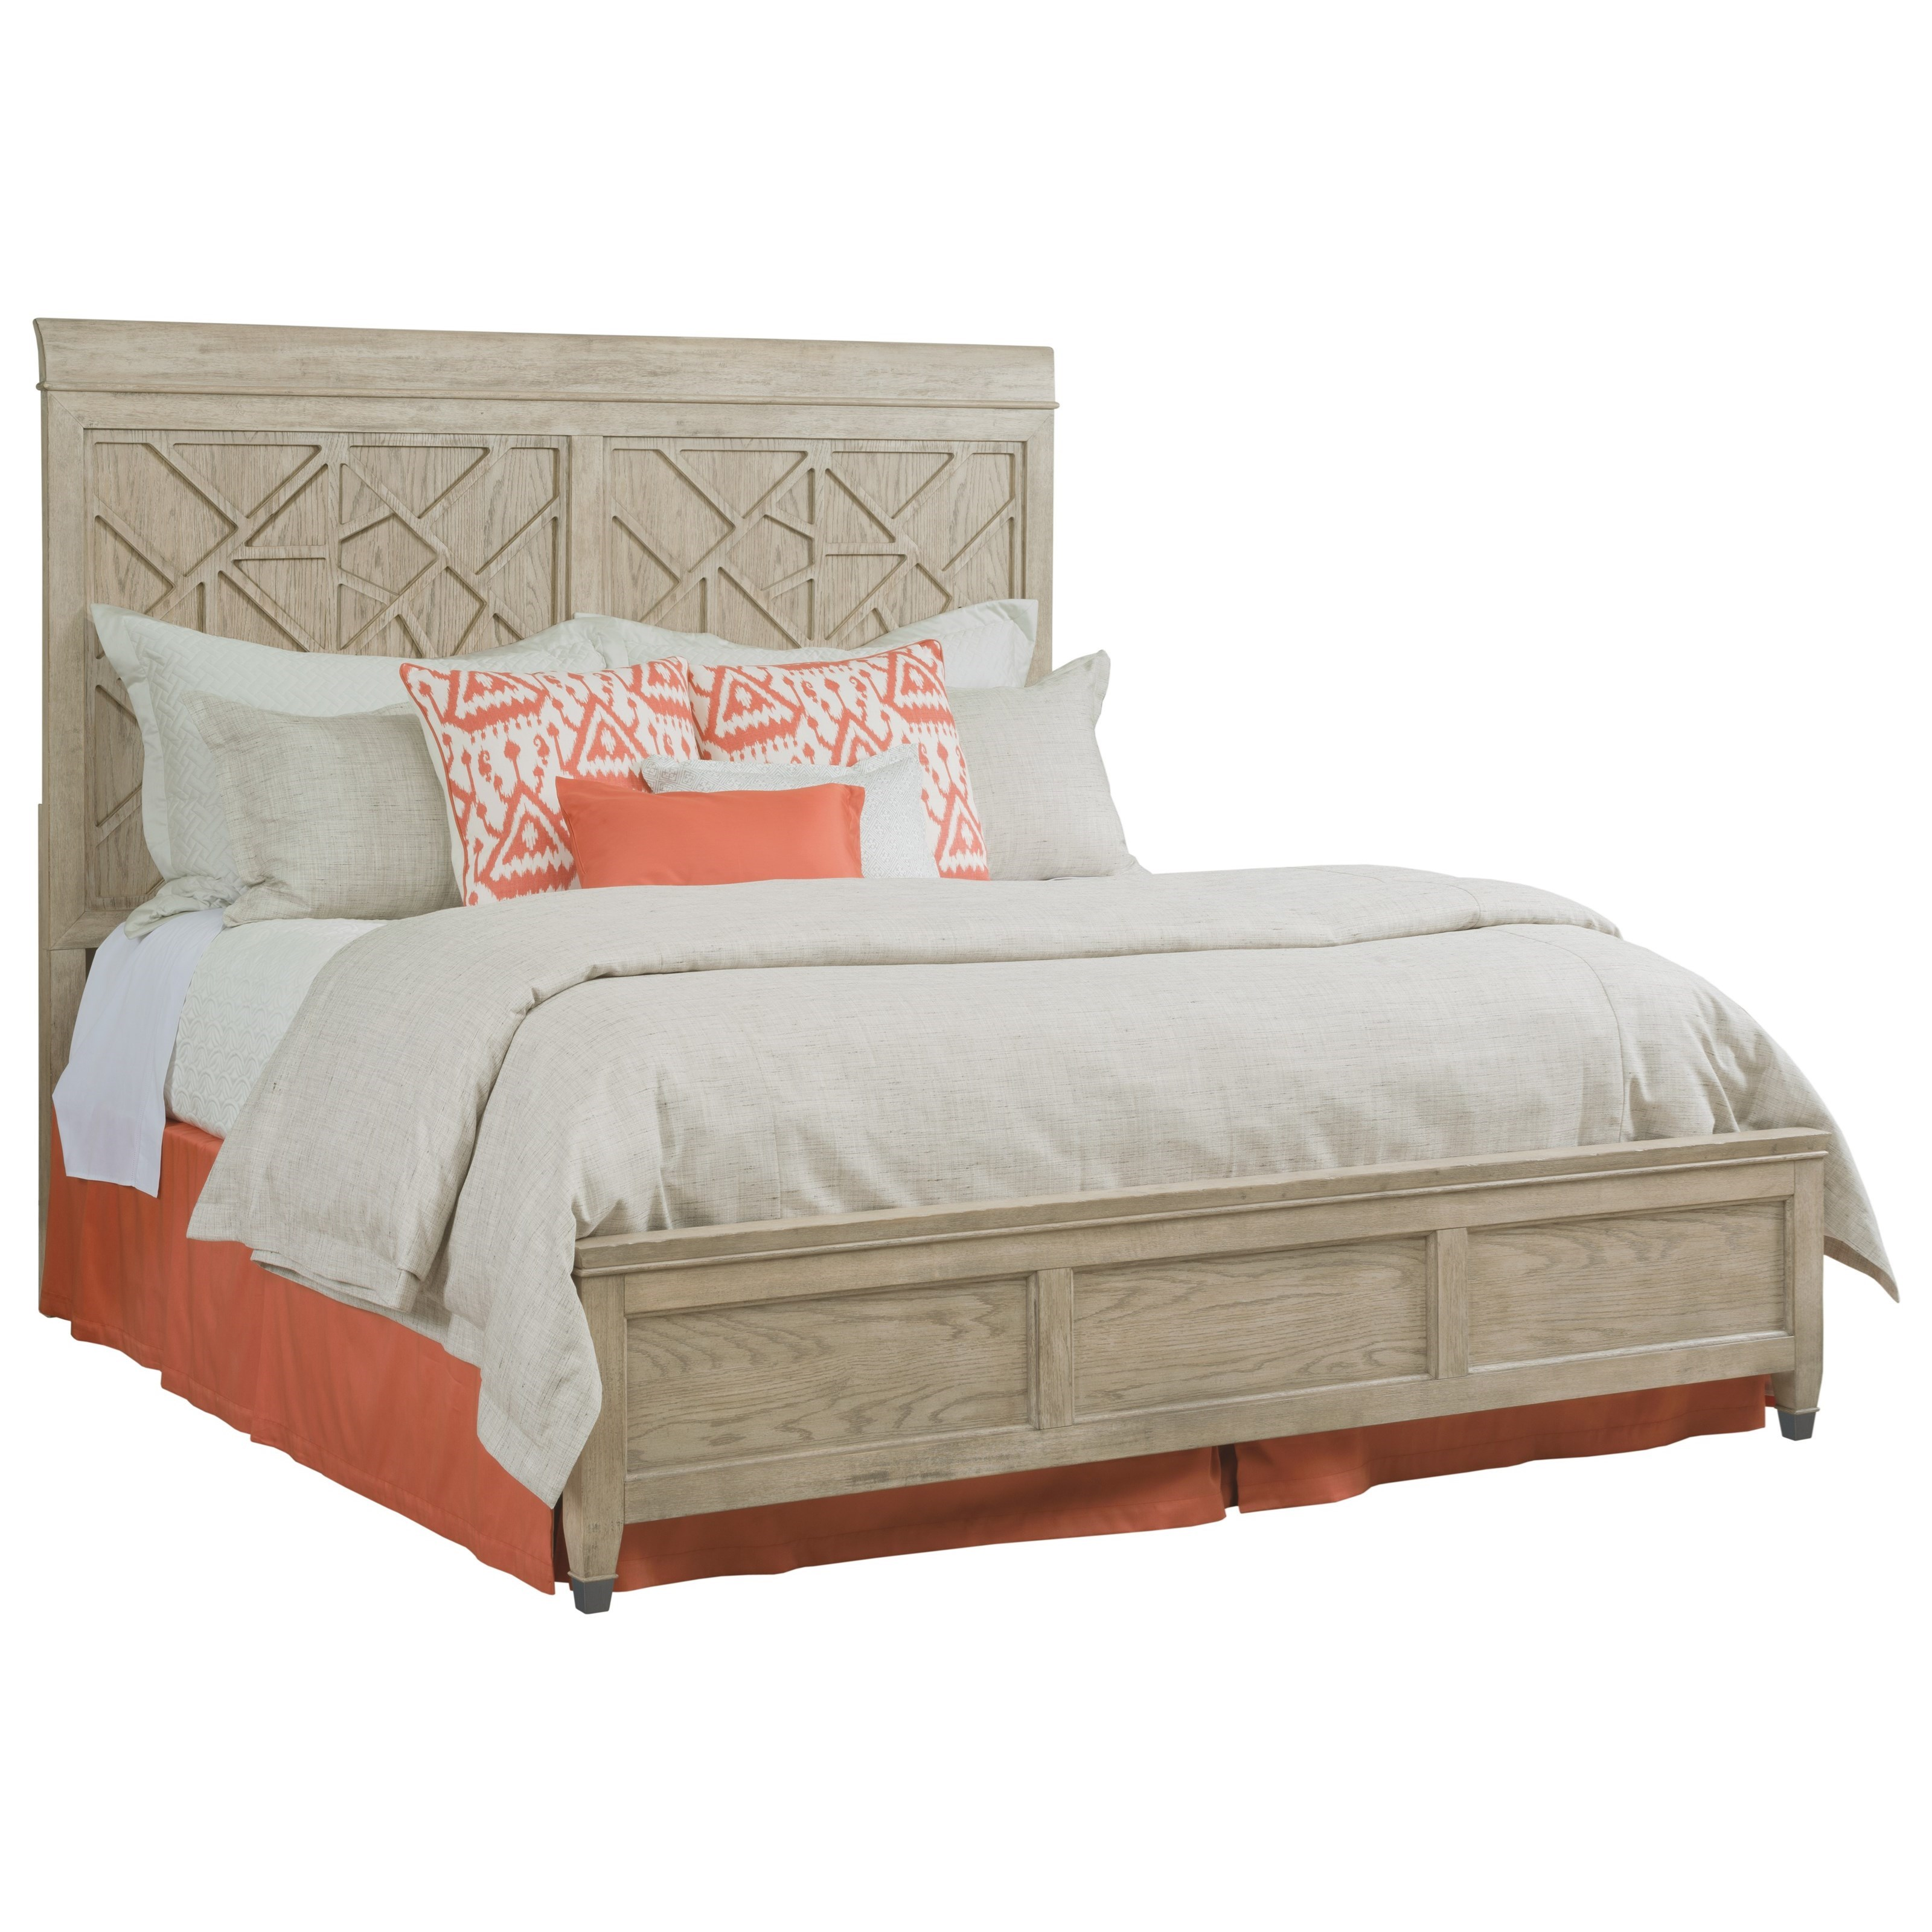 California King Altamonte Bed